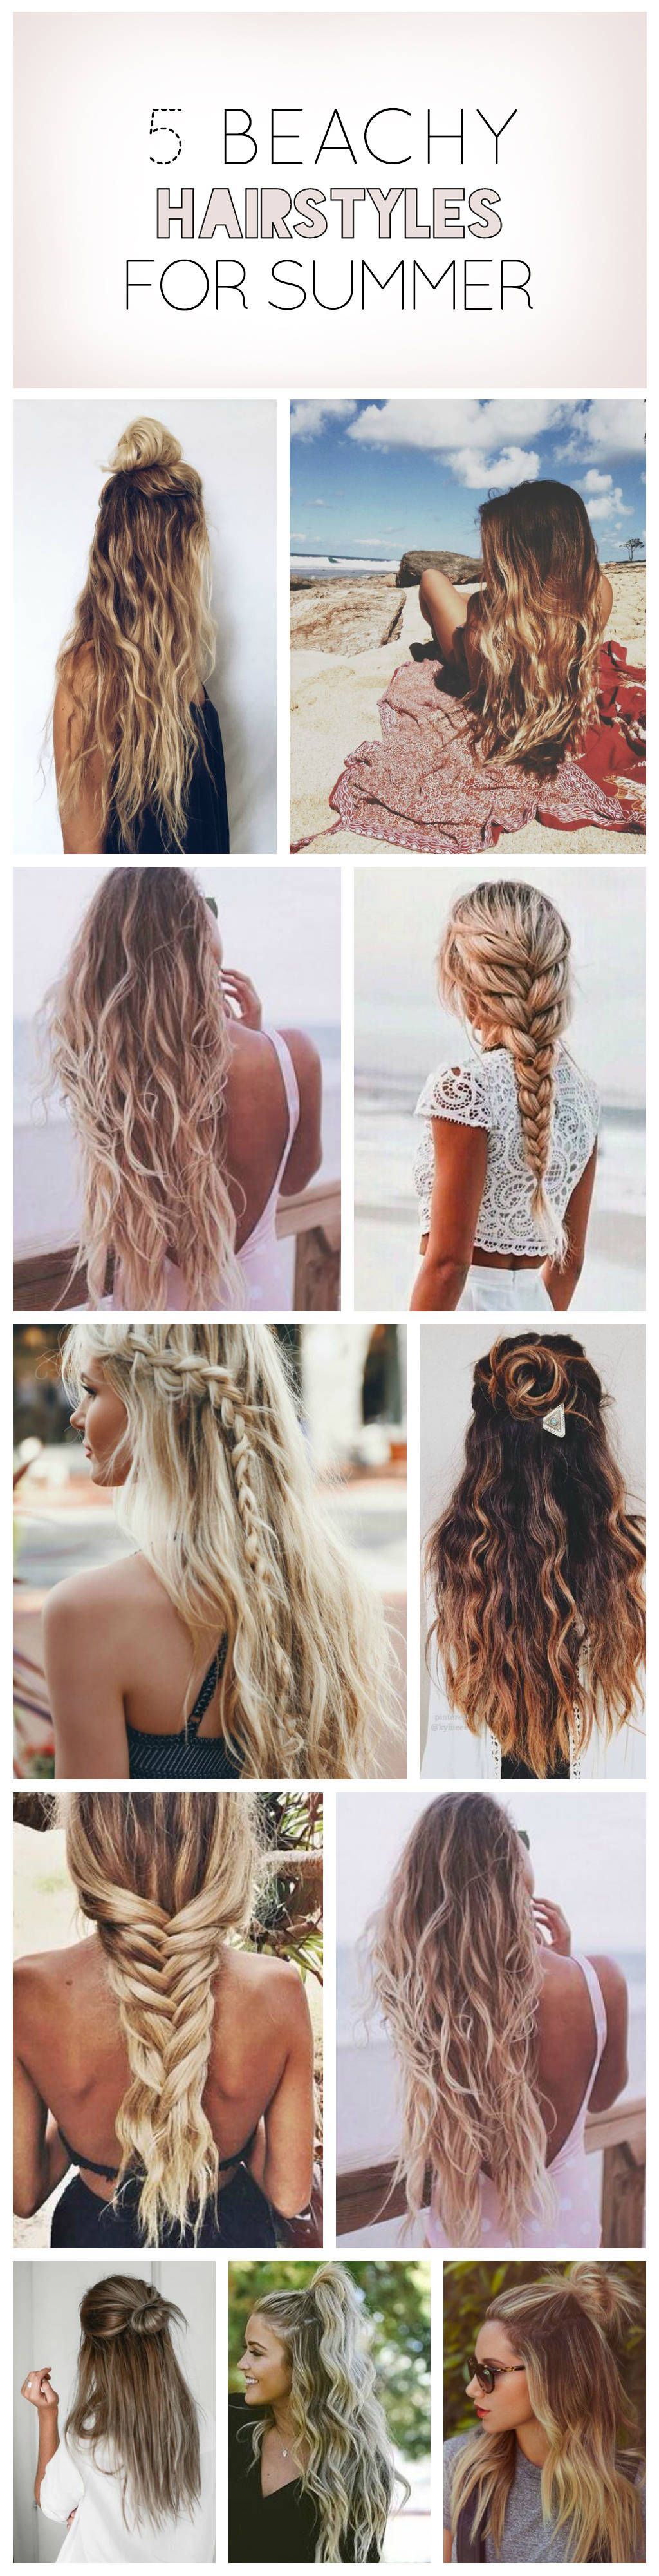 beachy hairstyles for summer prom ideas pinterest summer